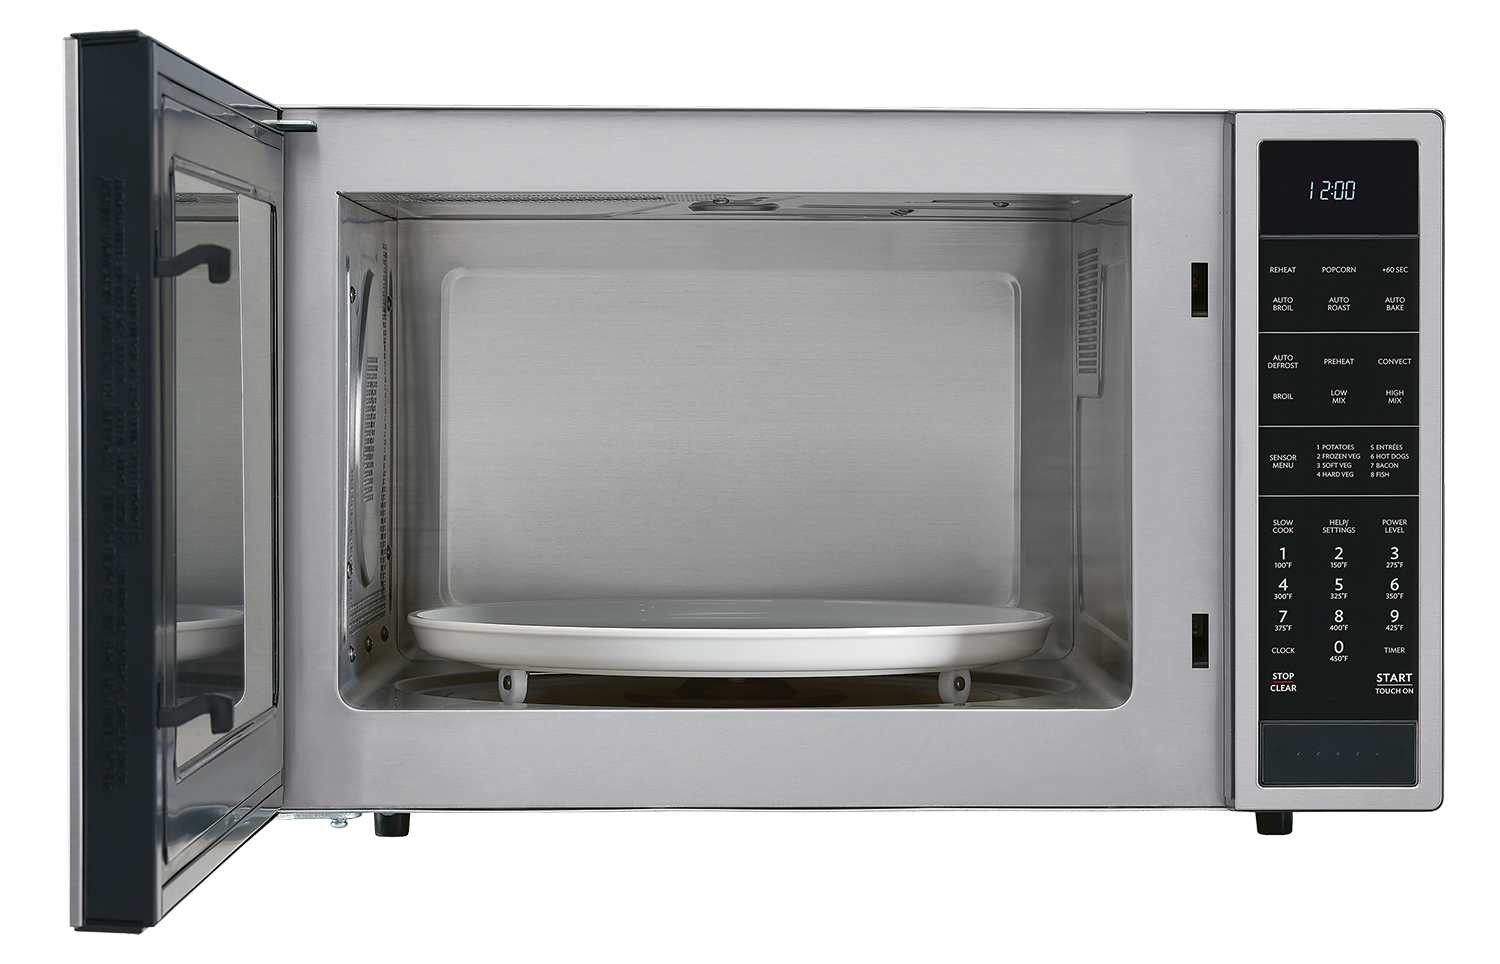 Sharp Microwave Convection Oven Manual Bestmicrowave